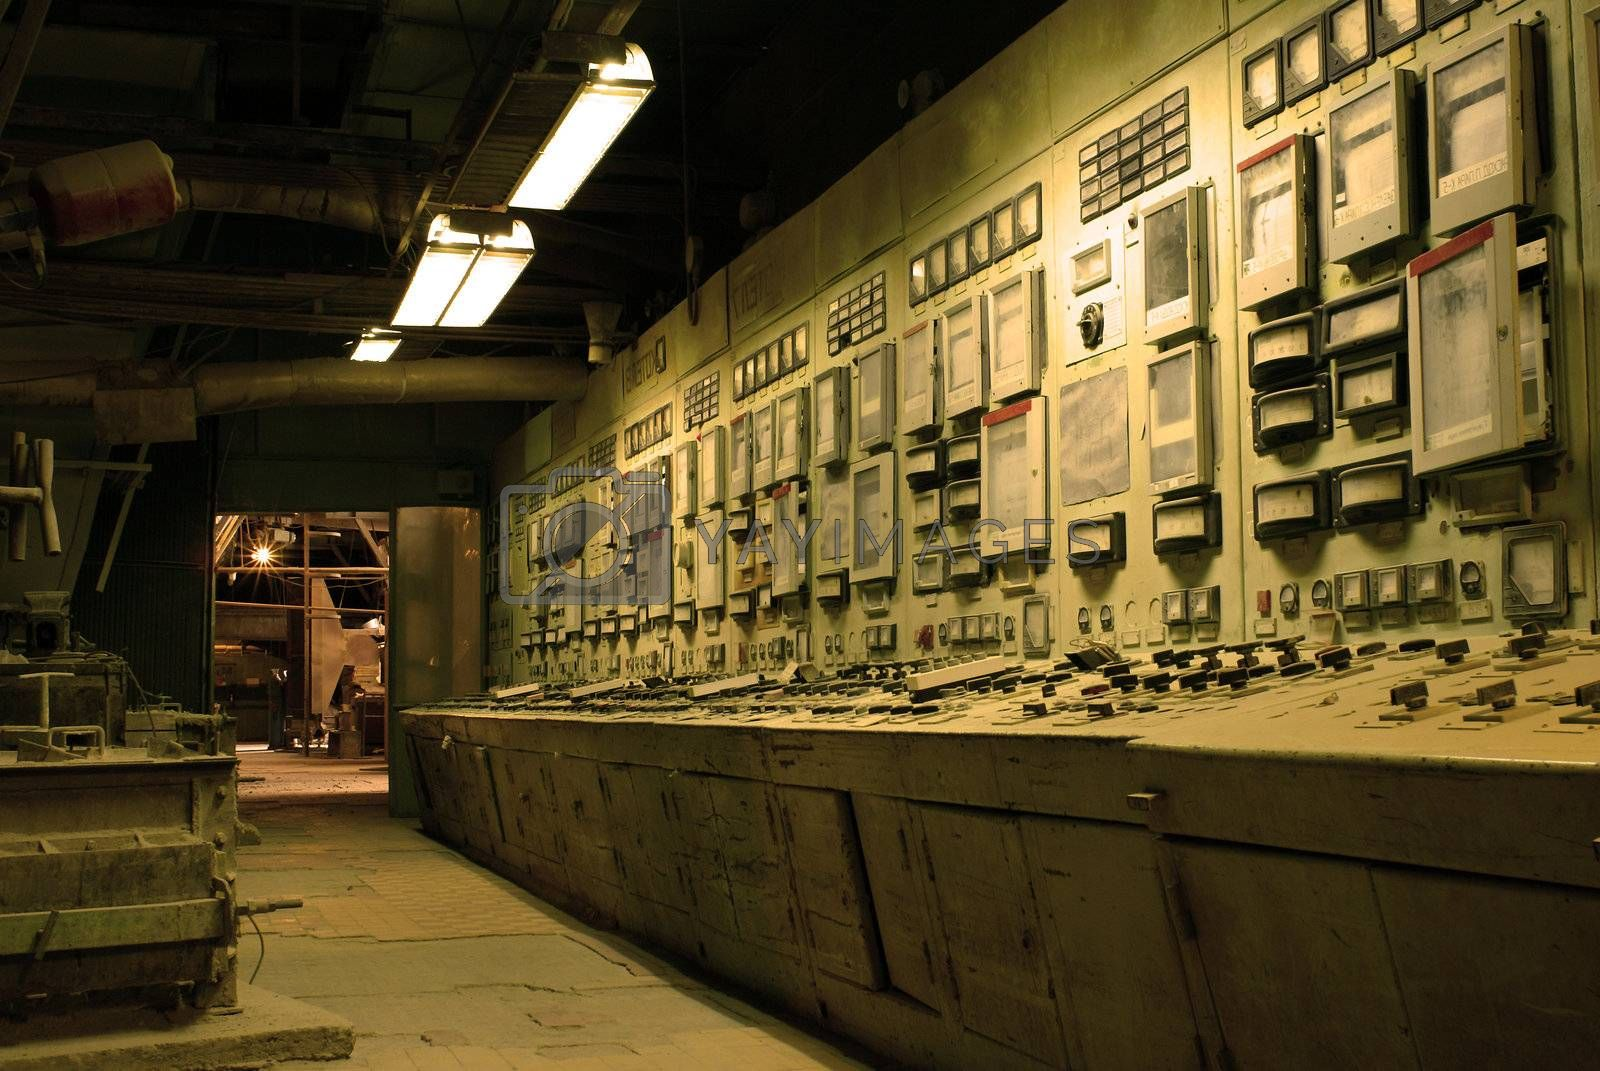 operator room at old creepy dark decaying dirty factory